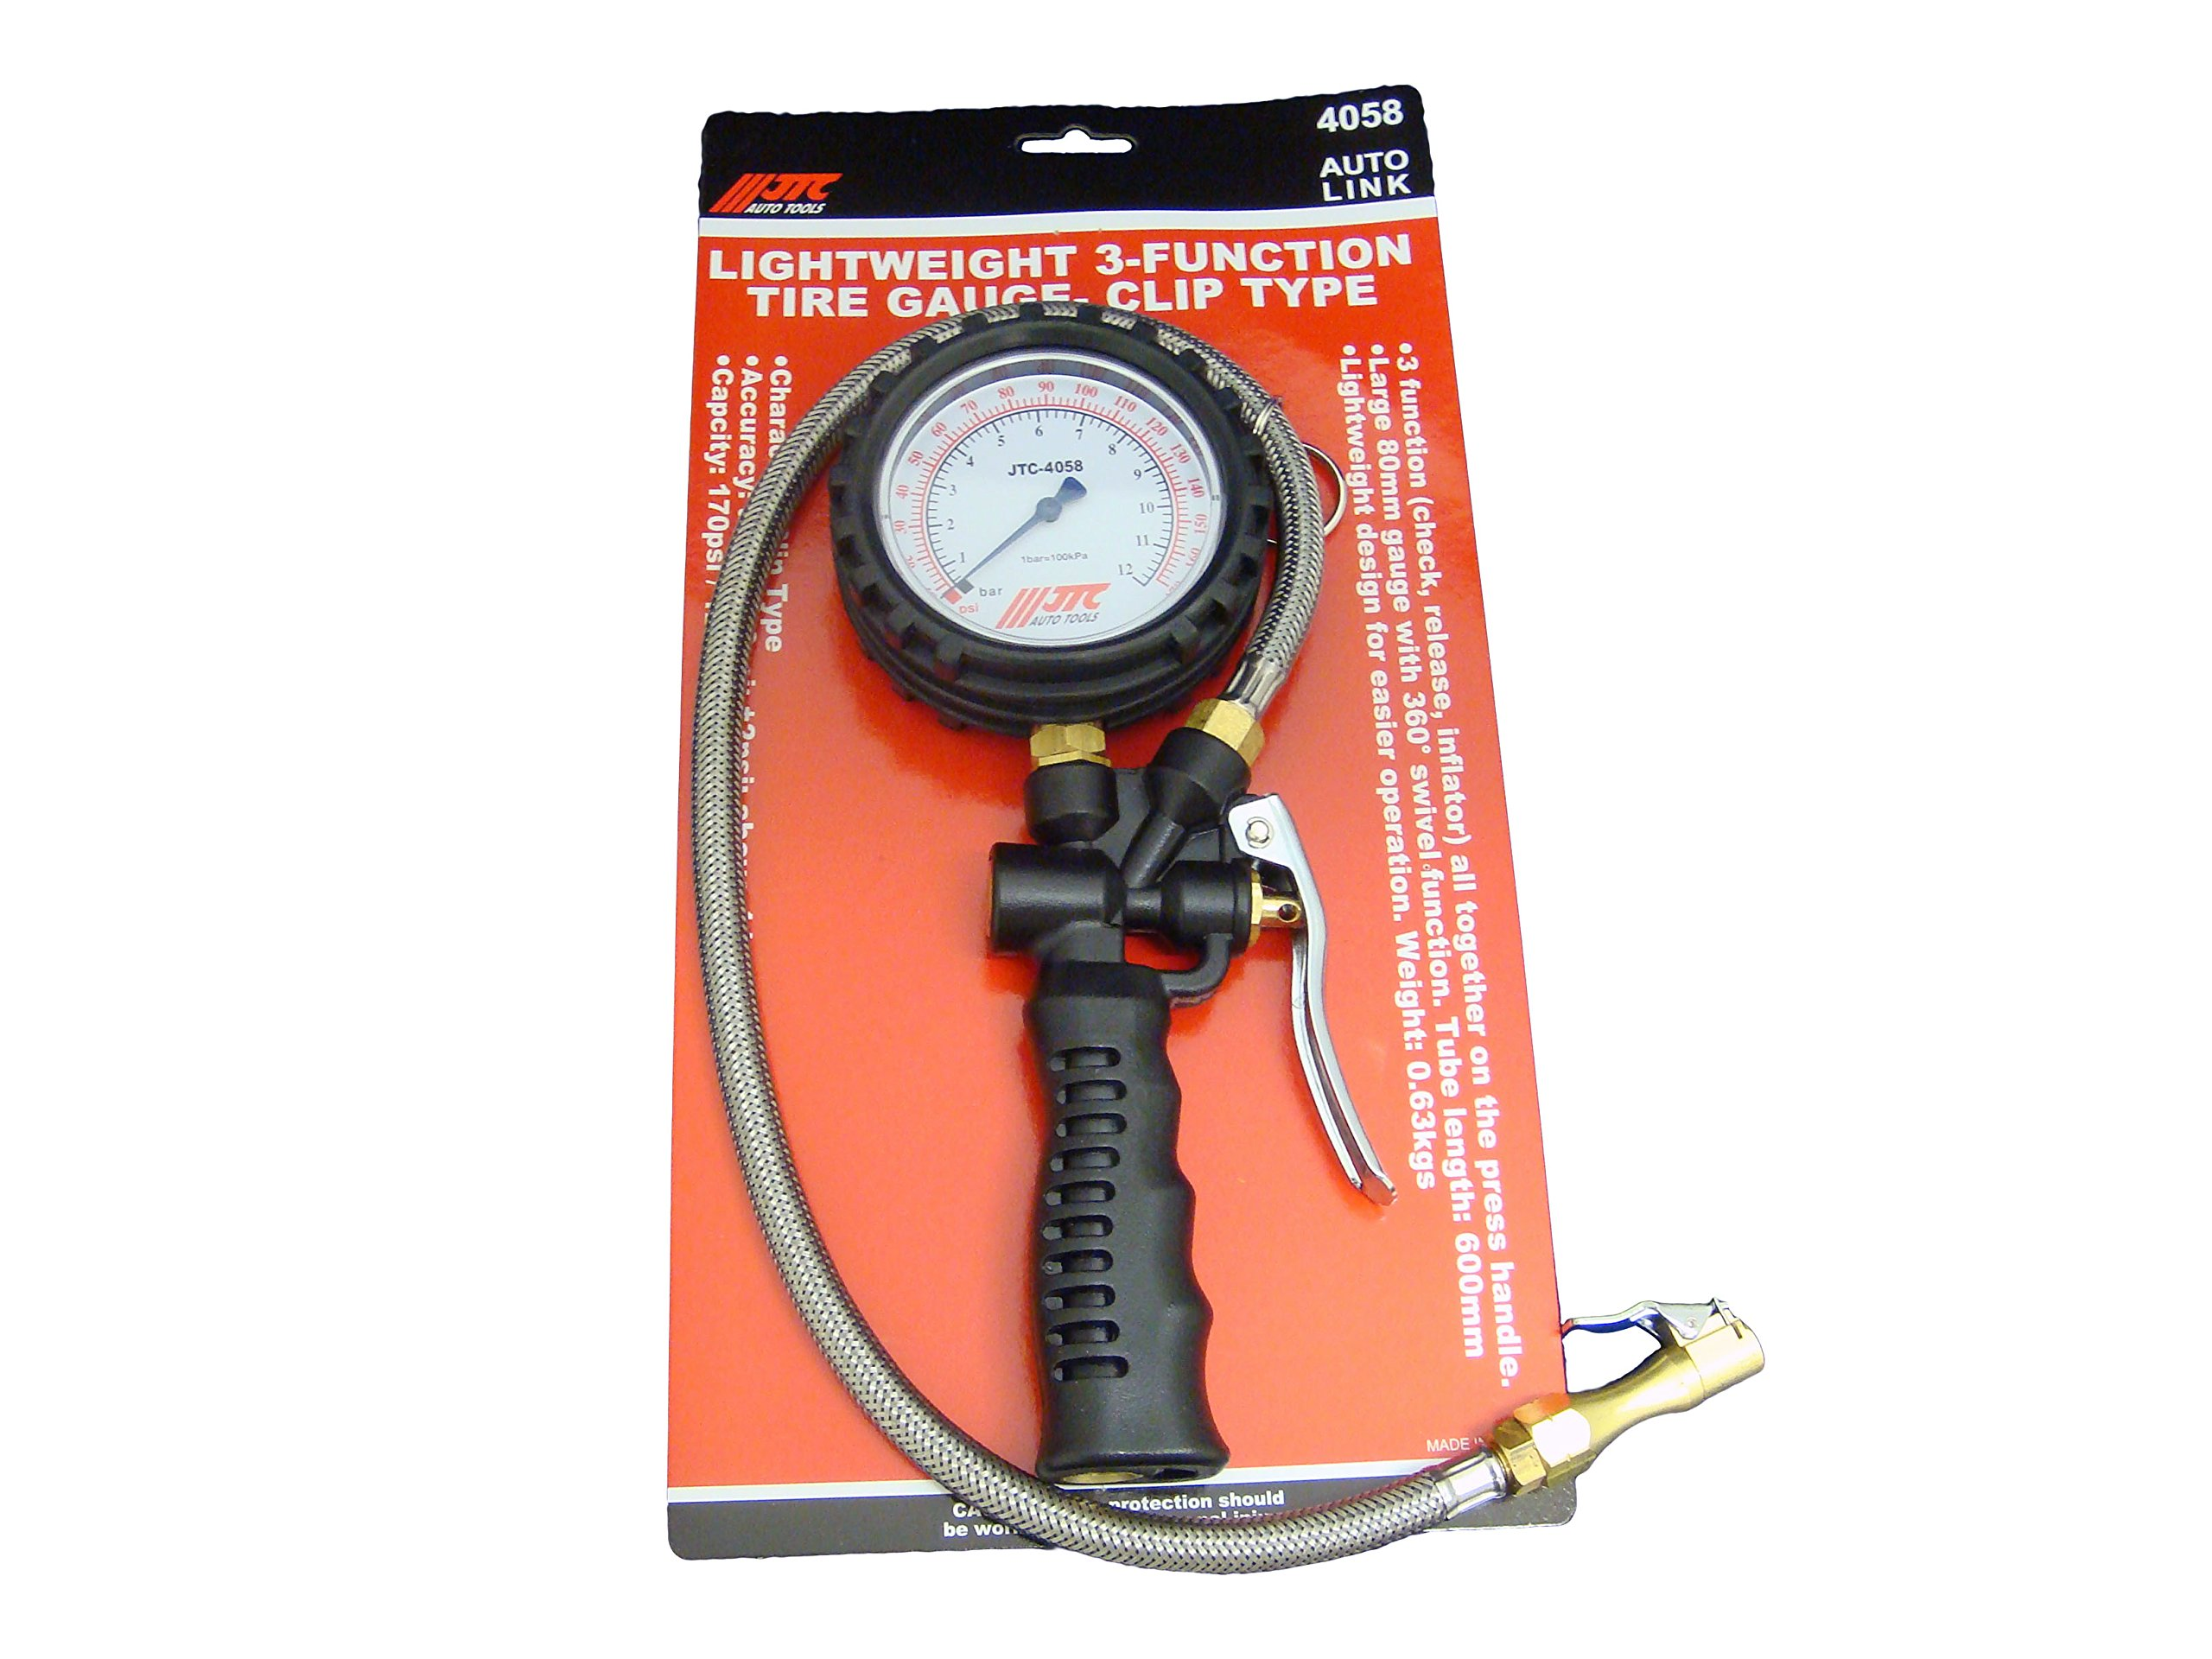 LIGHTWEIGHT 3-FUNCTION TIRE GAUGE-CLIP TYPE BY JTC 4058